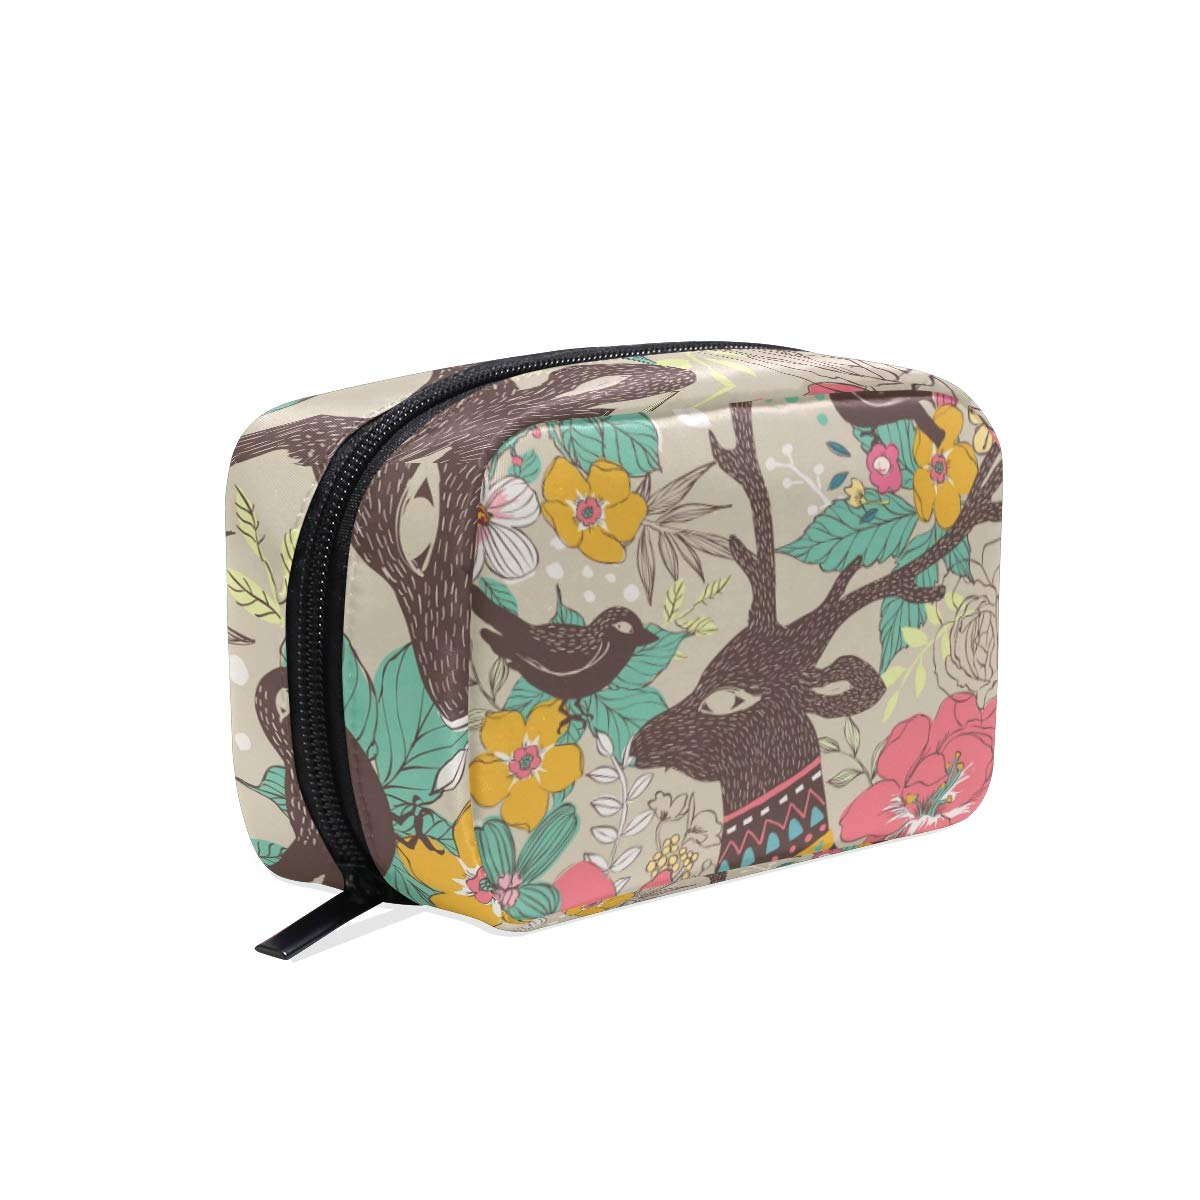 Makeup Bag Portable Travel Cosmetic Elegant Christmas Deer Train Case Toiletry Bag Organizer Accessories Case Tools Case for Beauty Women